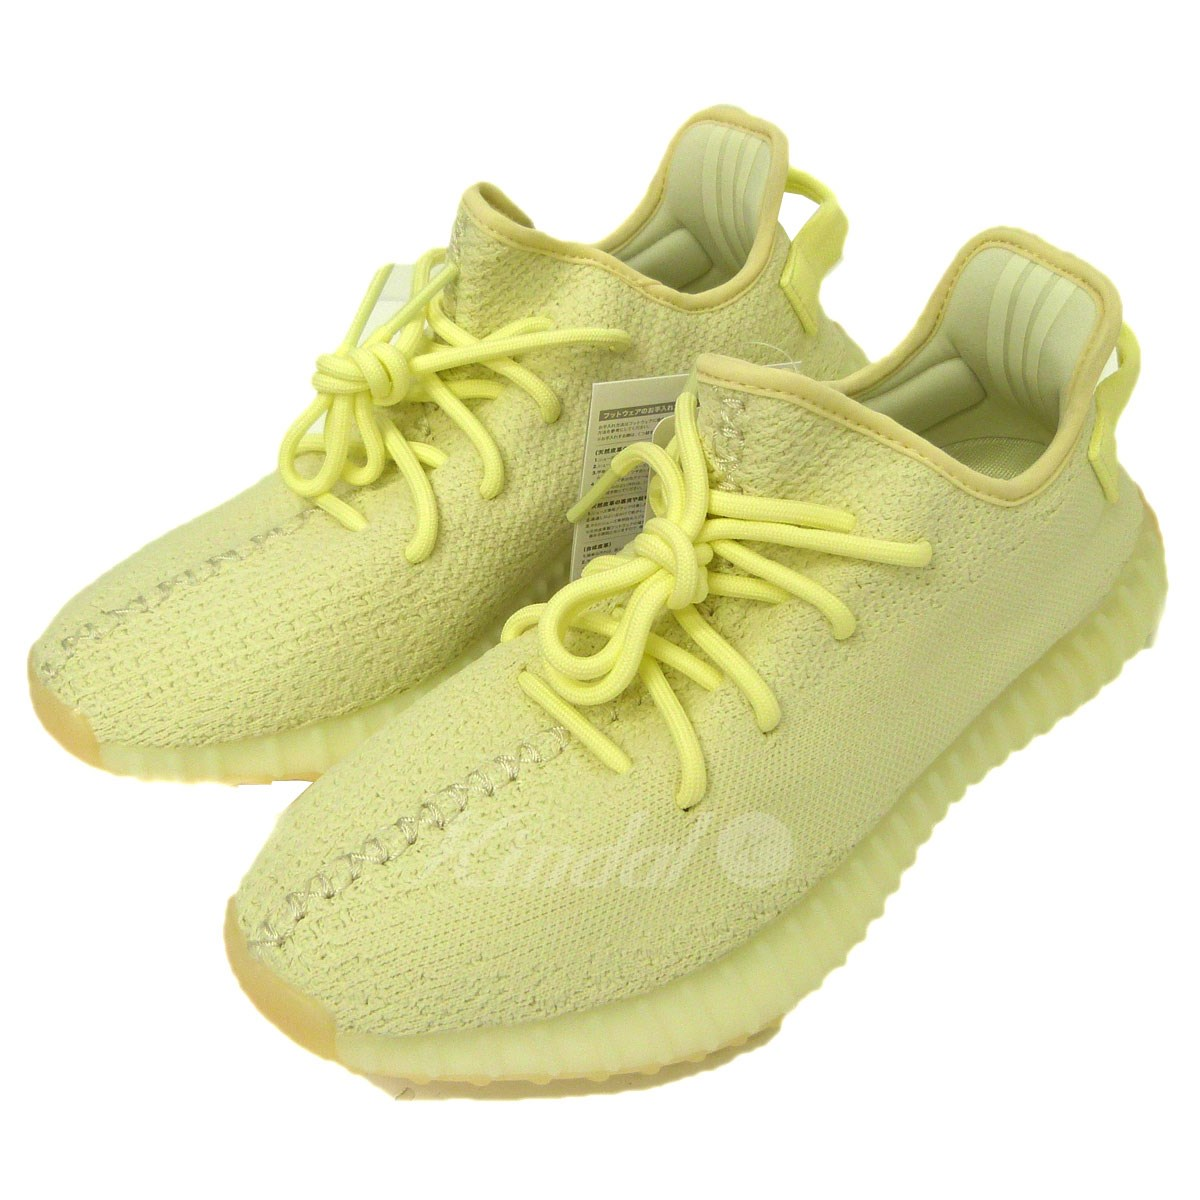 【中古】adidas originals by Kanye West 「YEEZY BOOST 350 V2」スニーカー 【送料無料】 【089416】 【KIND1641】